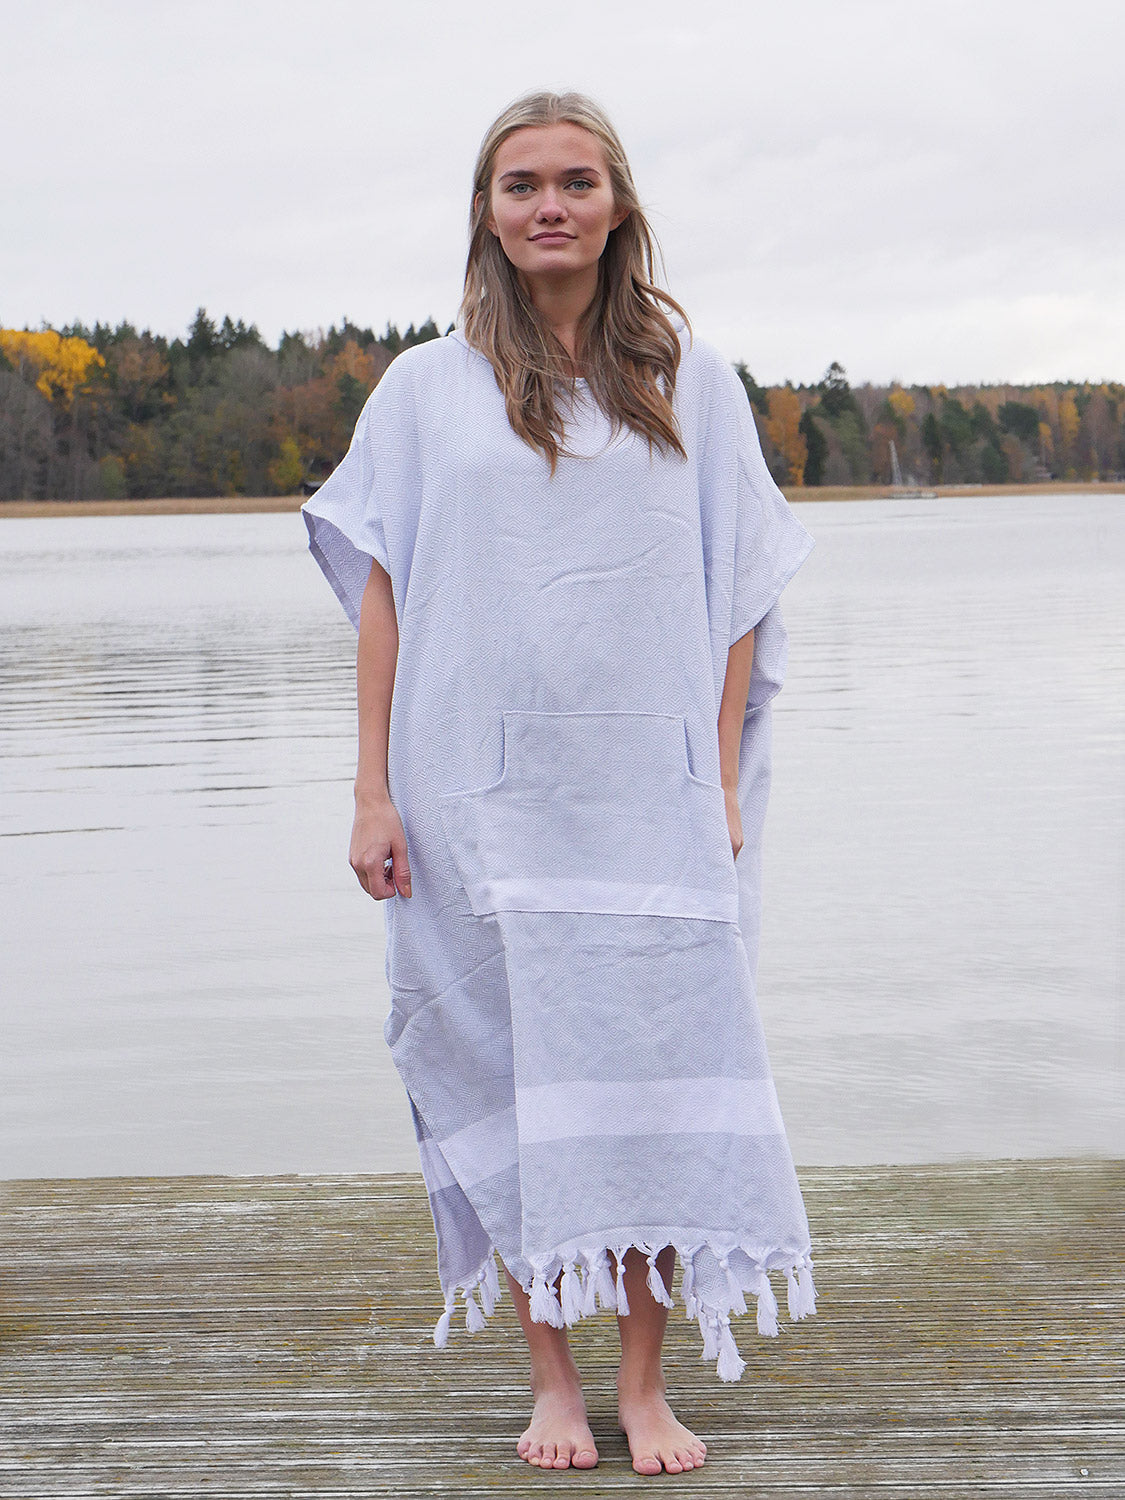 Izla Unisex Hooded Poncho Light Grey - Izla